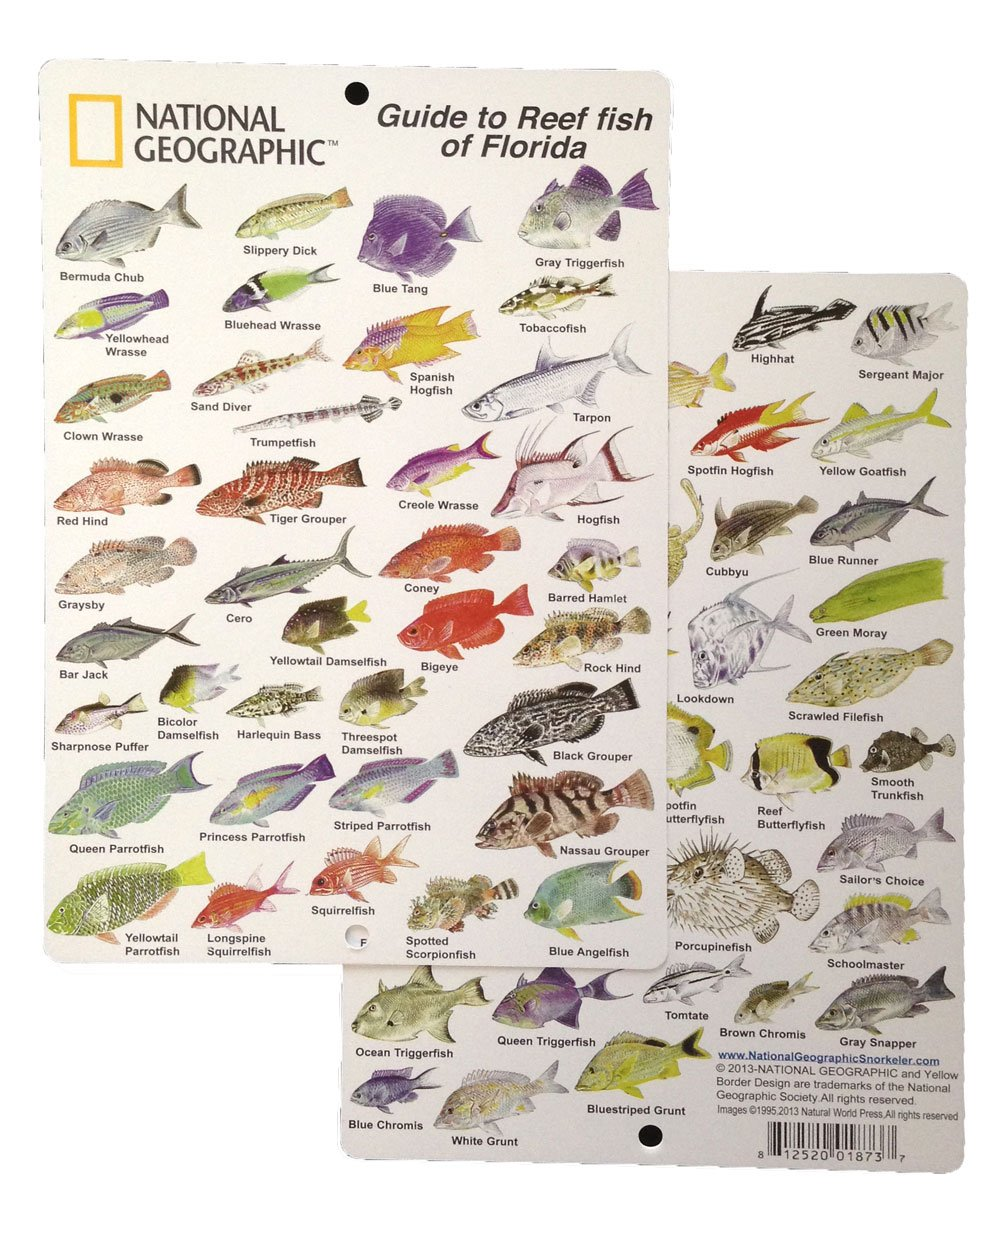 Hawaii reef fish guide images for Hawaii fish guide